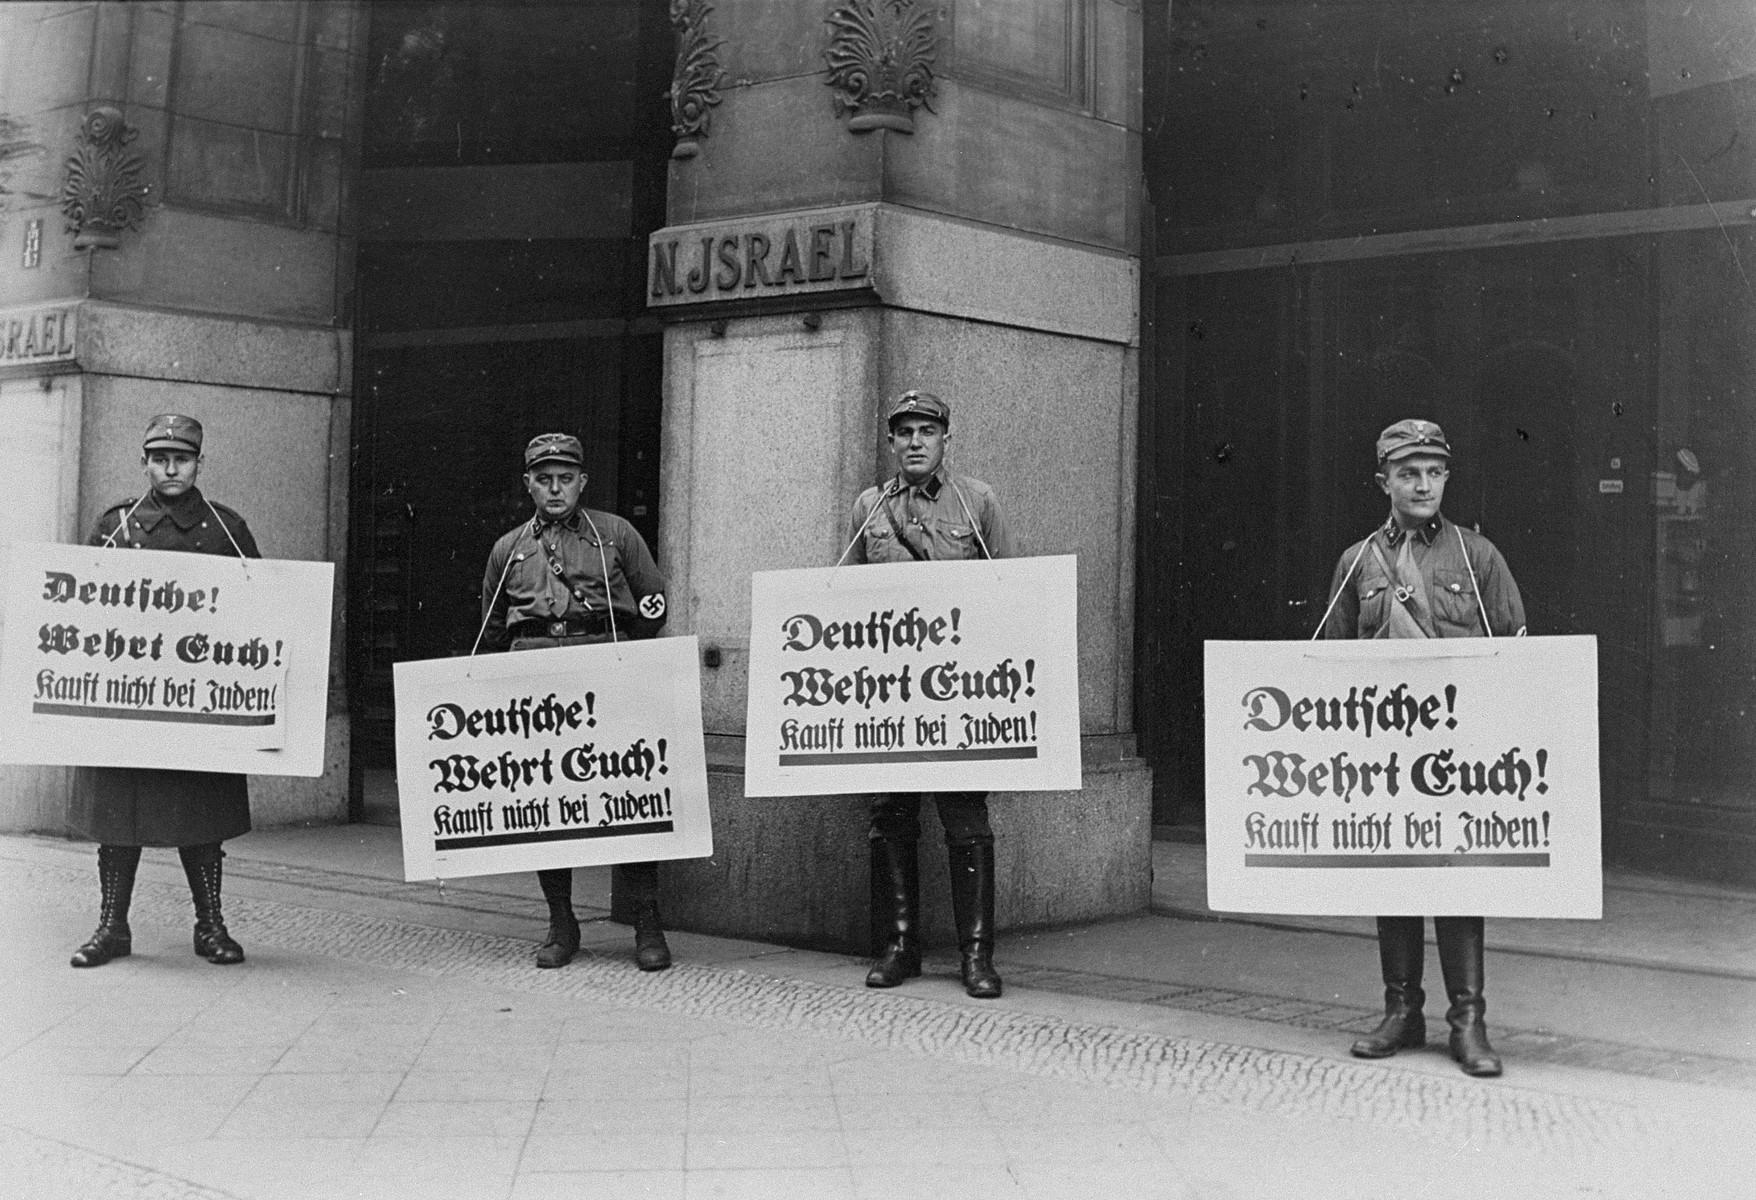 "Four SA pickets wearing boycott signs stand in front of the Jewish-owned N. Israel department store in Berlin.    The signs read:  ""Germans, defend yourselves.  Don't buy from Jews!"""